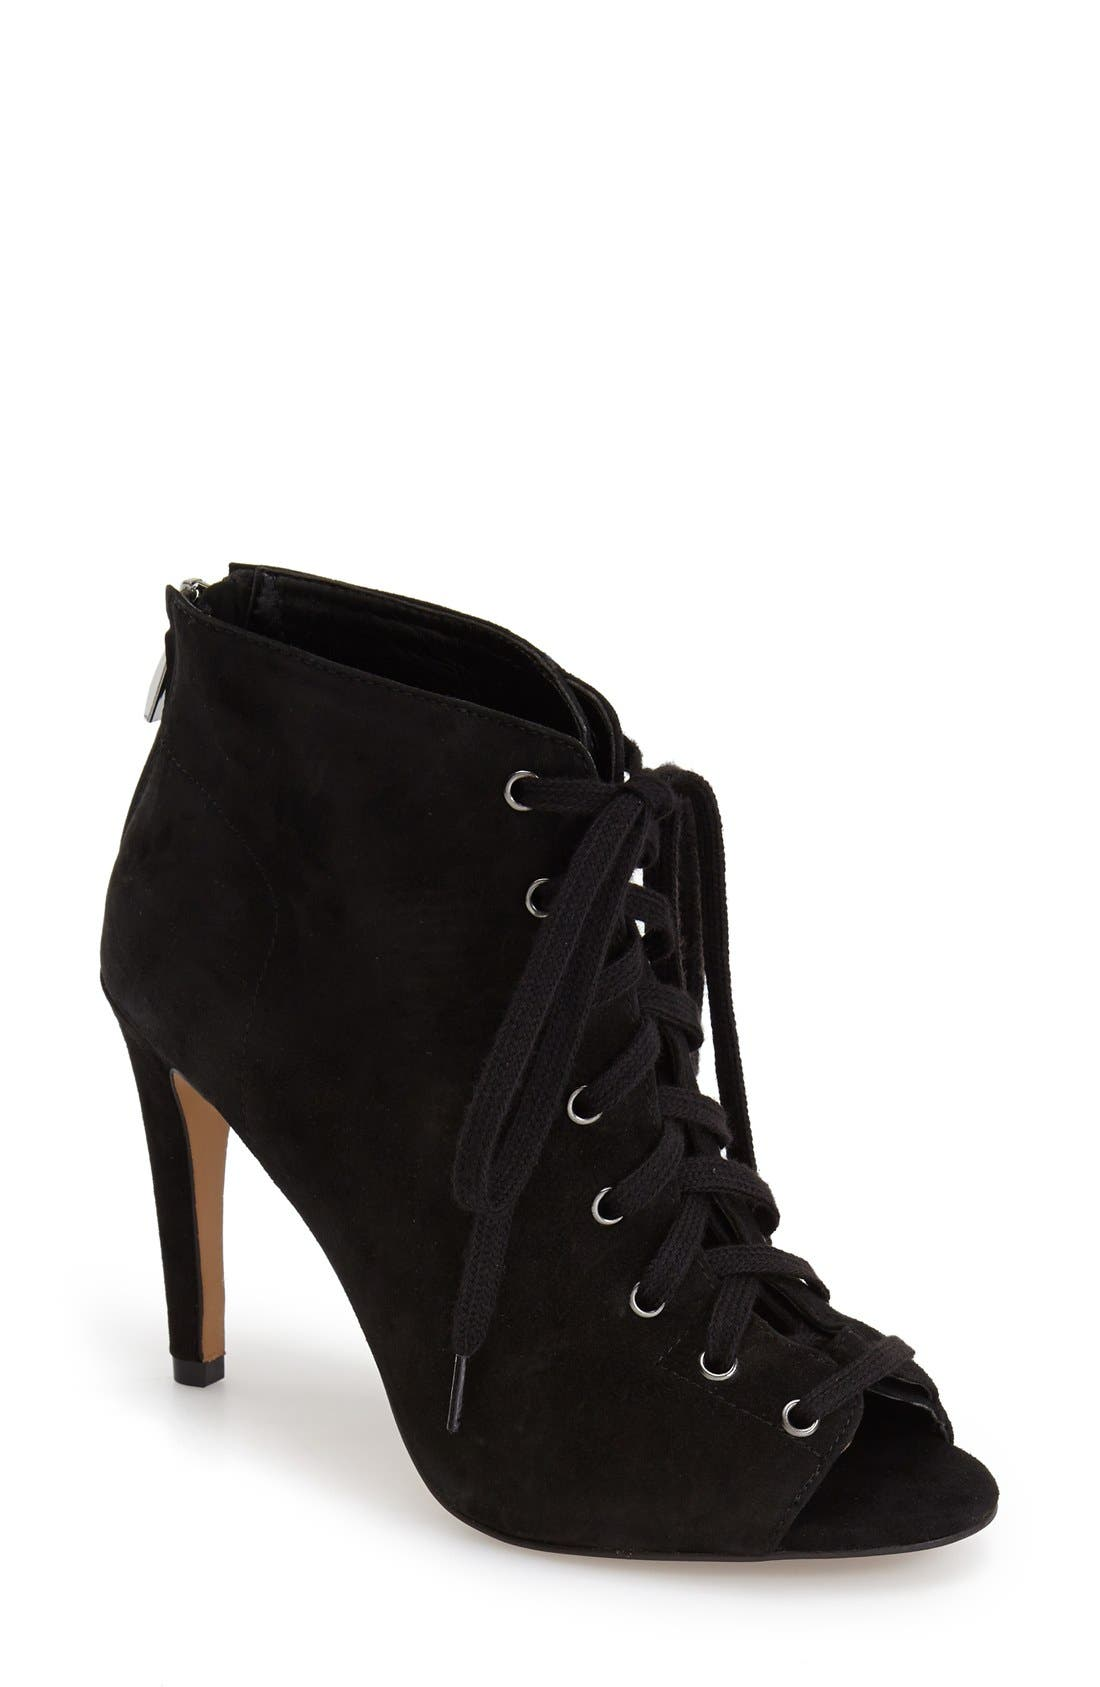 Main Image - French Connection 'Quillan' Lace-Up Peep Toe Bootie (Women)